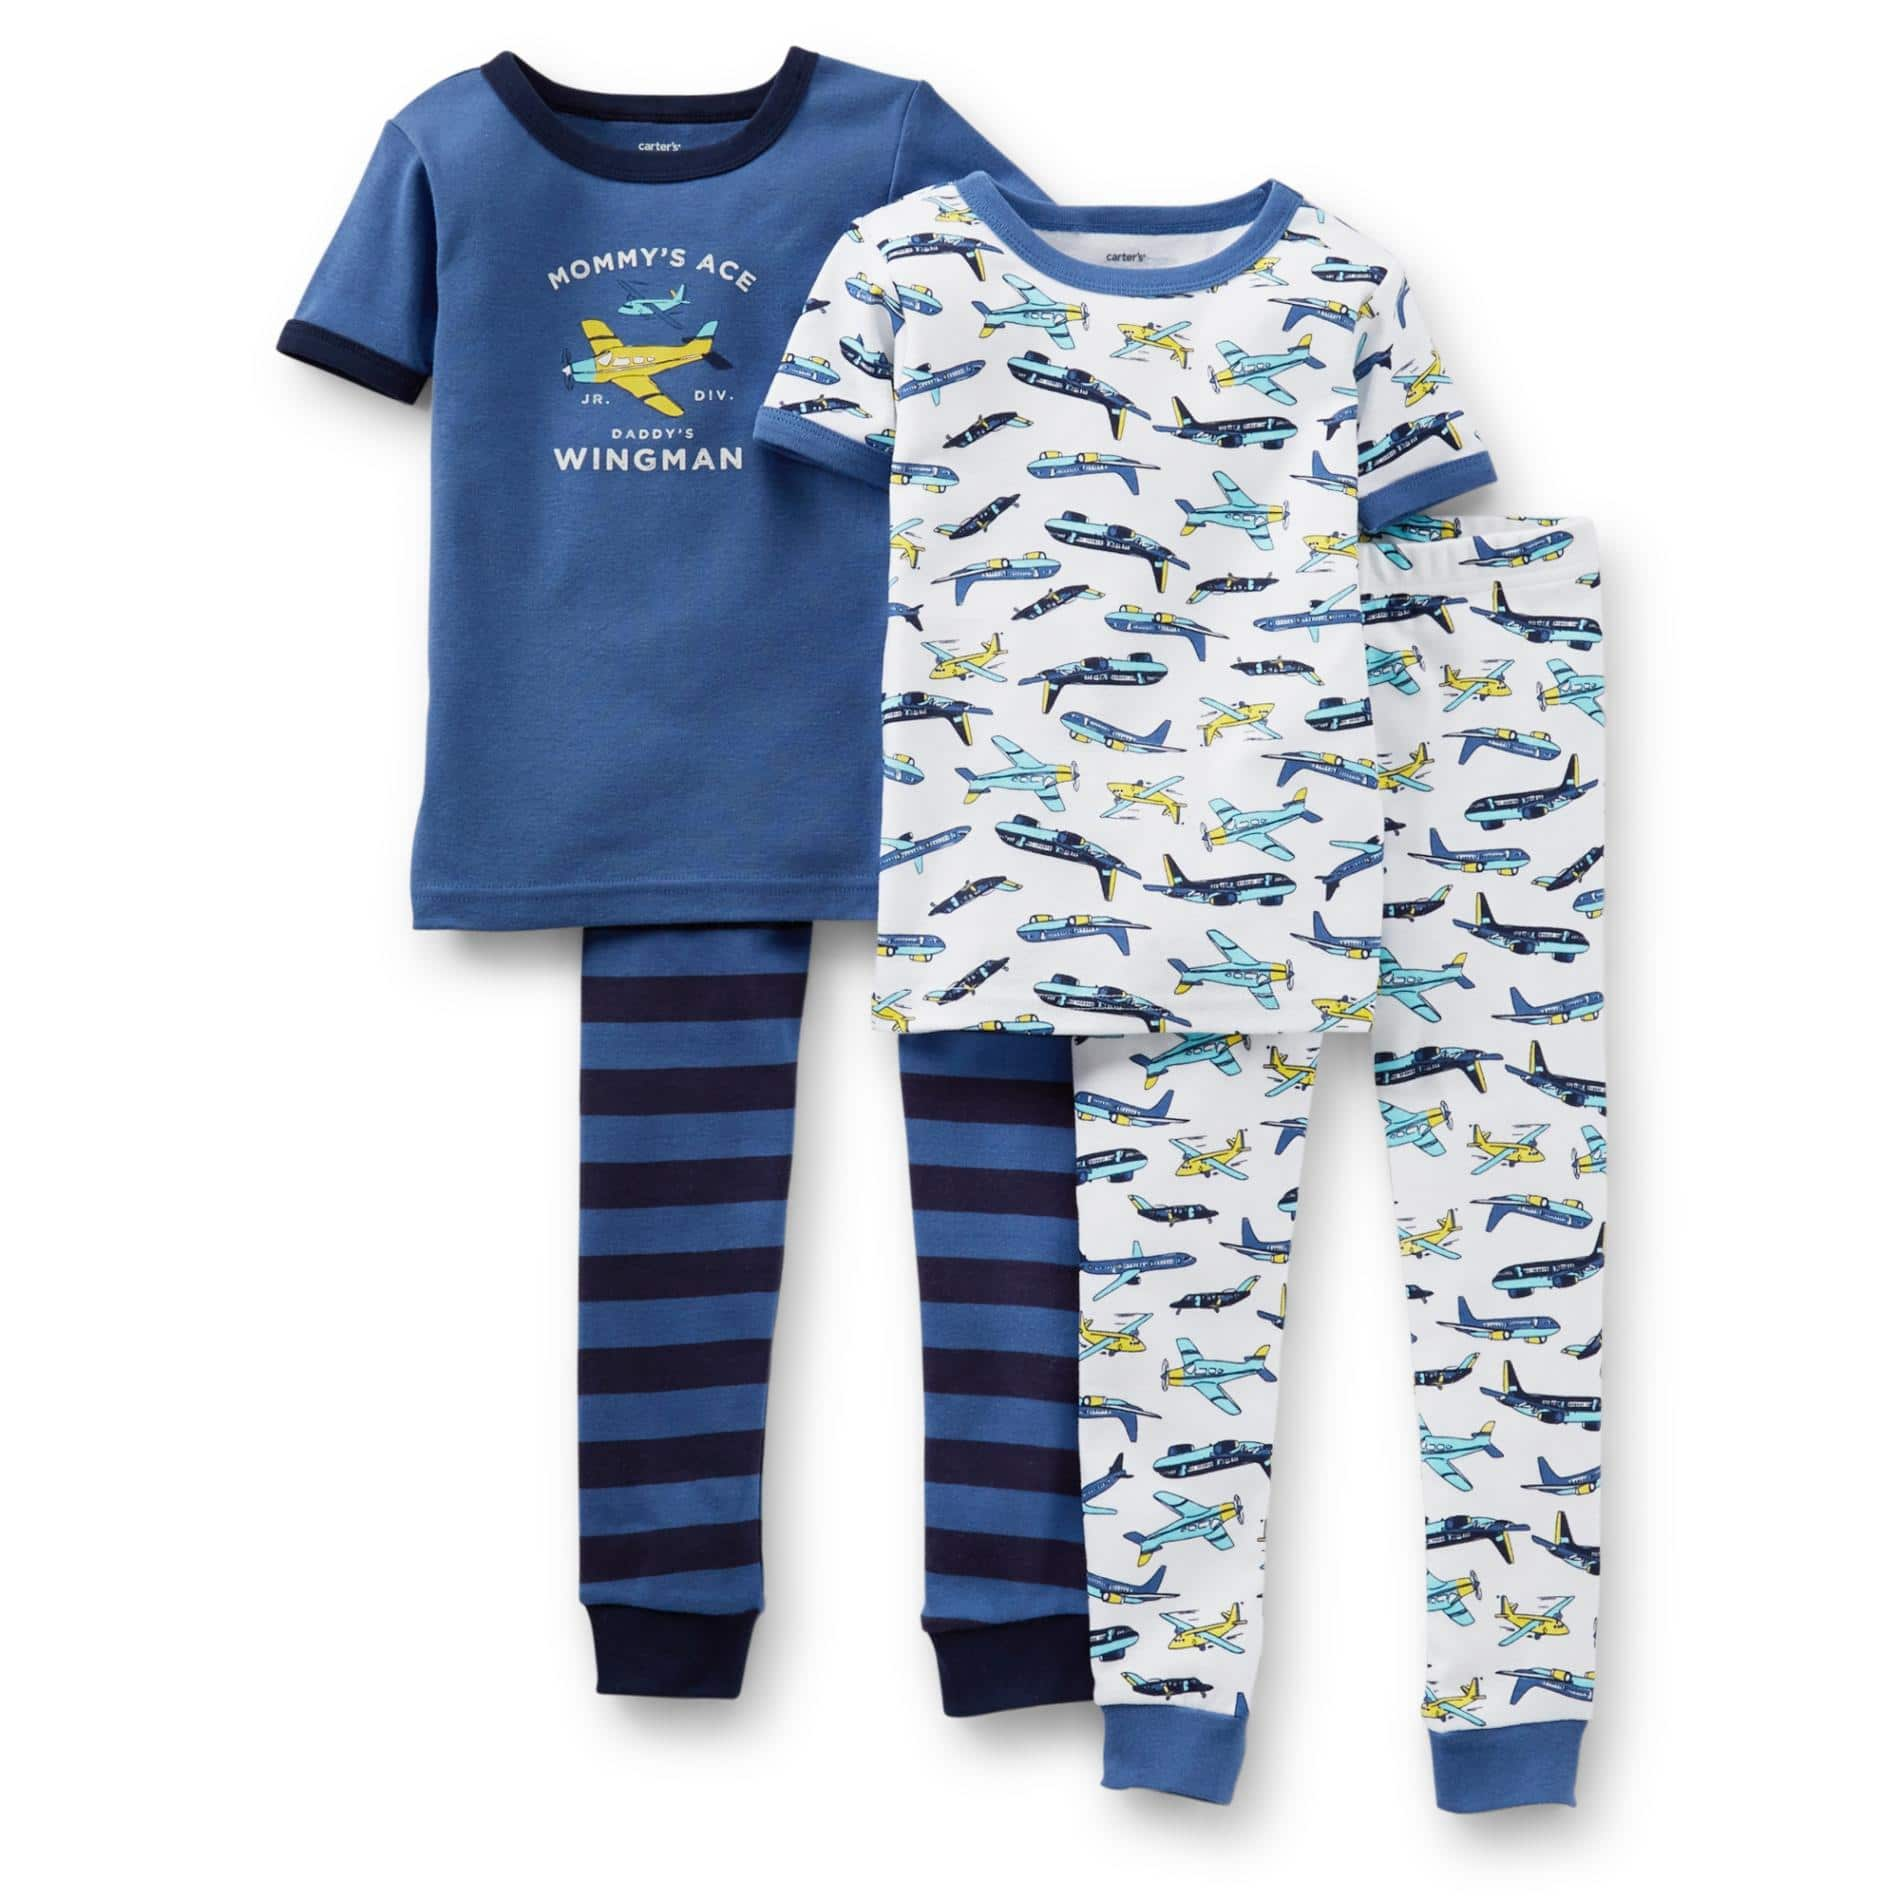 Infant & Toddler Pajamas: Boys' Carter Pajamas (various styles)  From $5 & More + Free In-Store Pickup